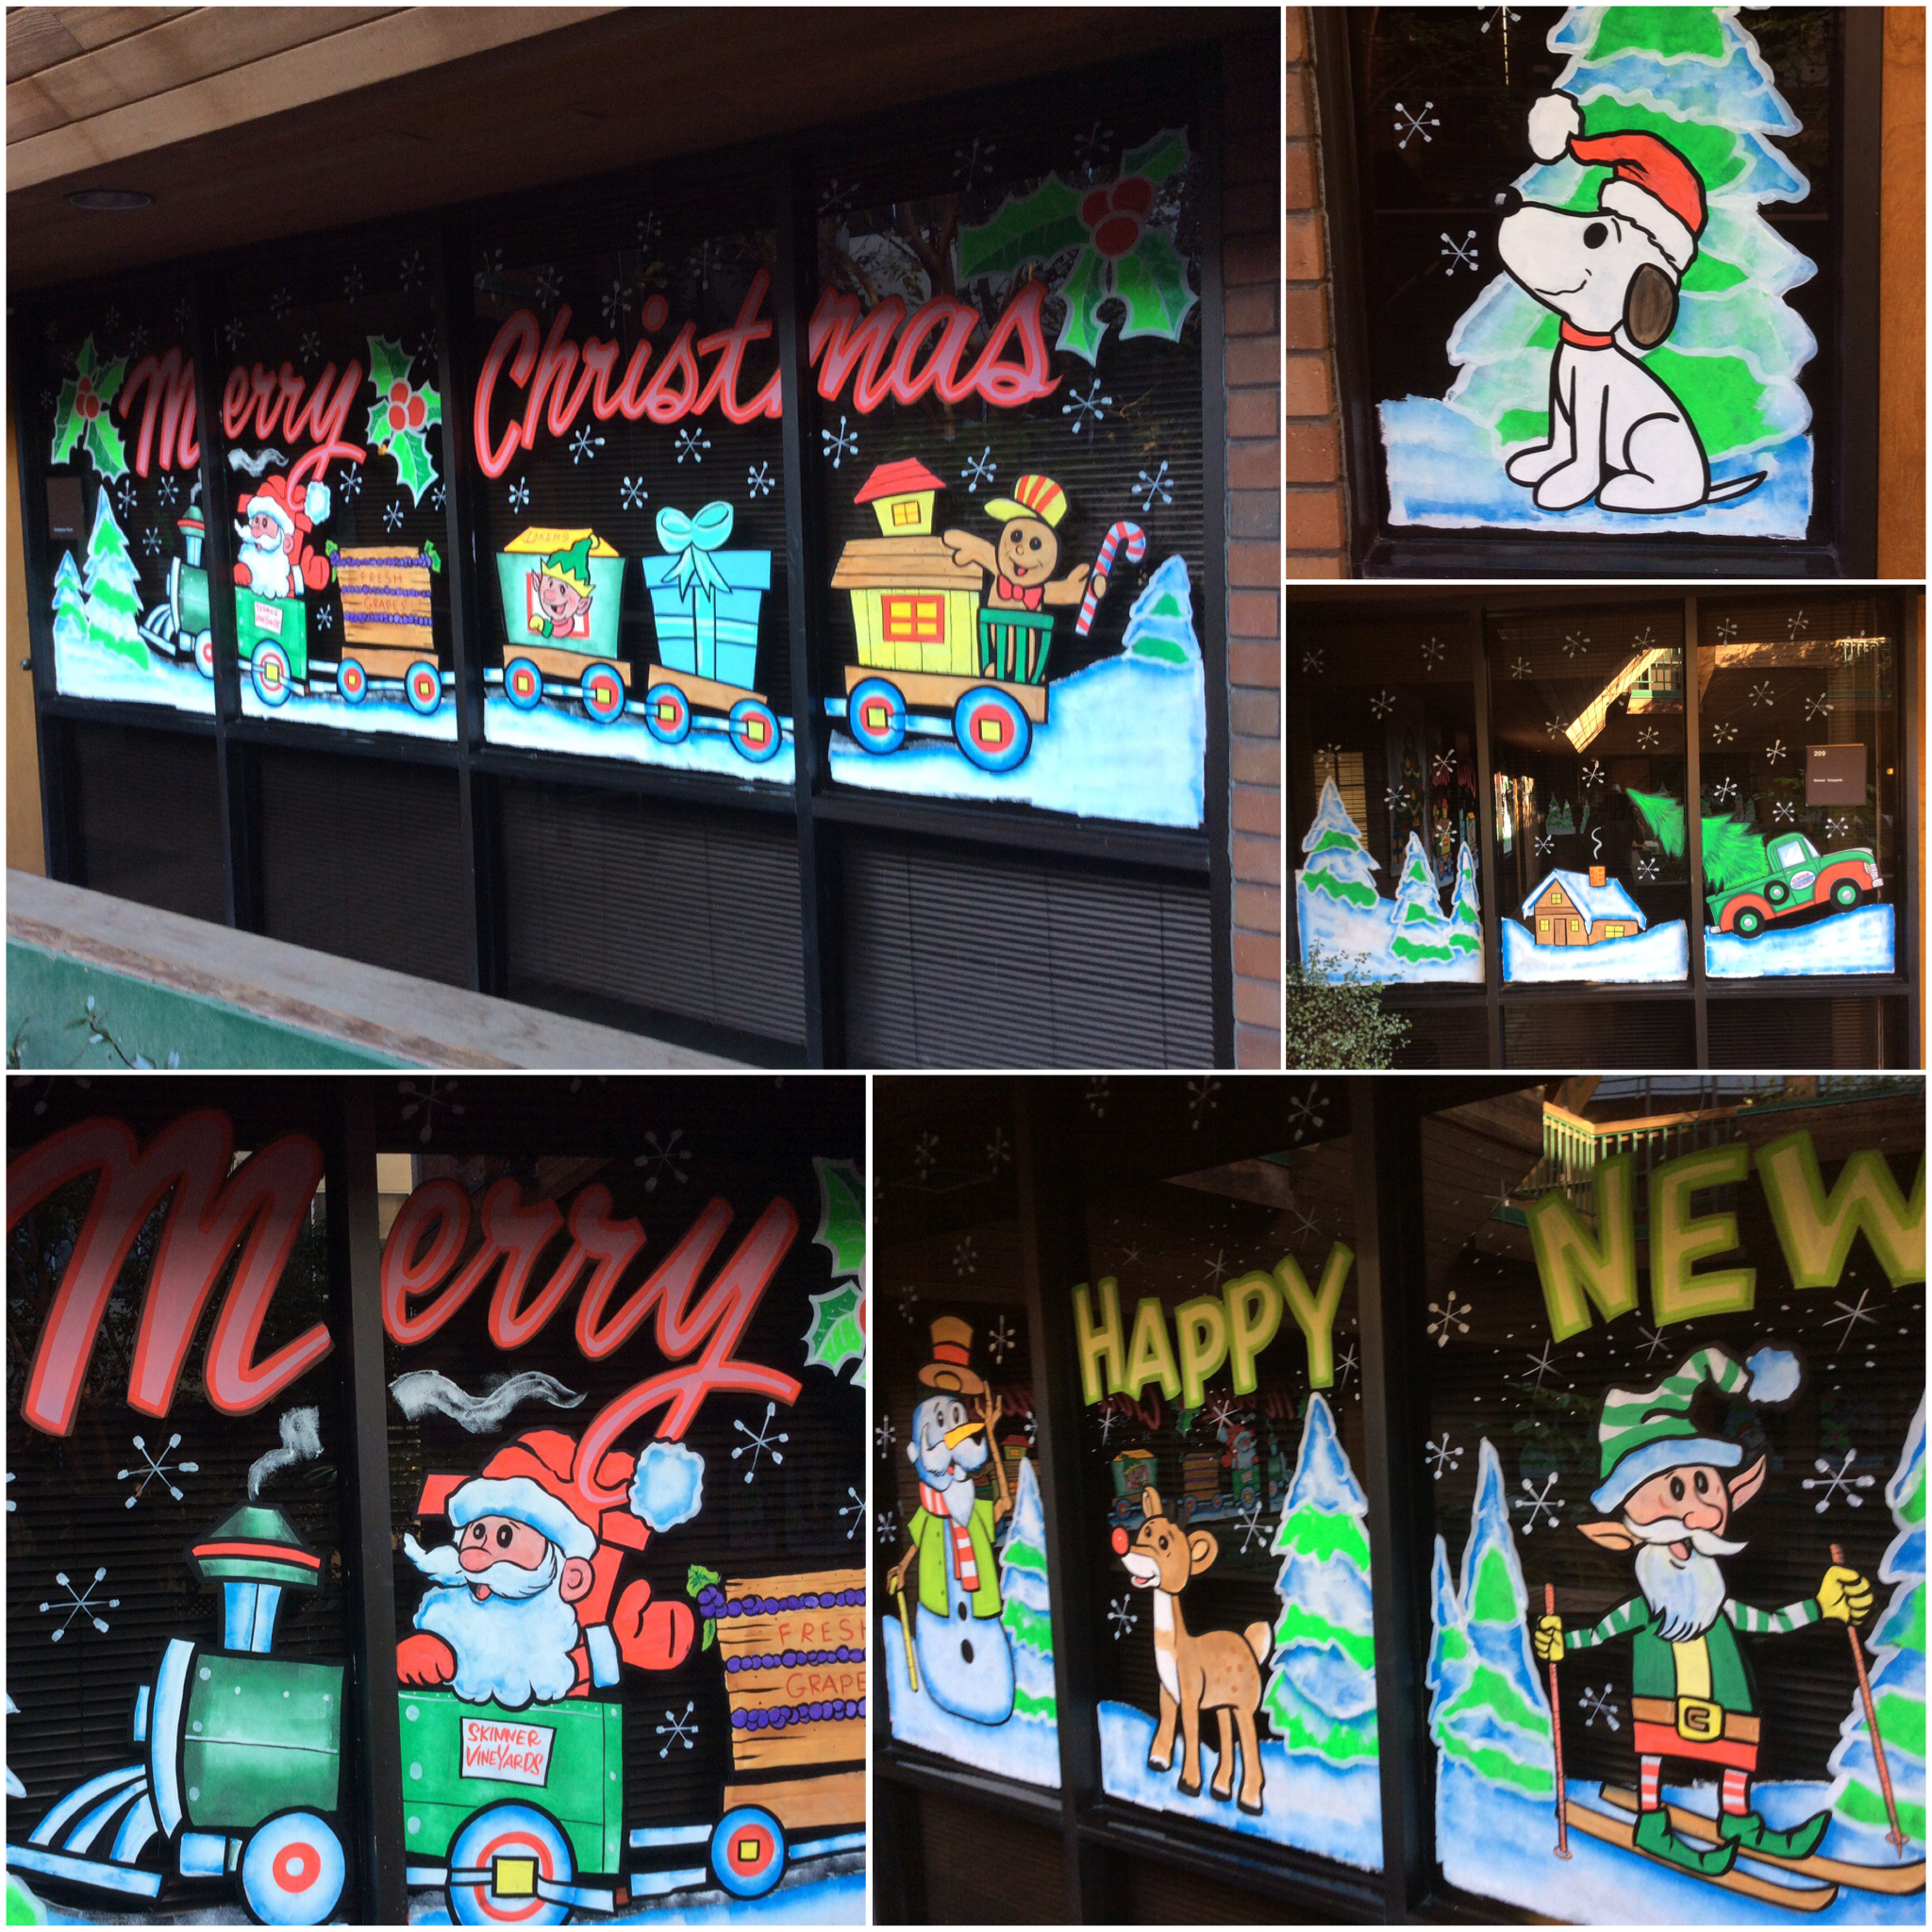 storefront sign, business sign, holiday sign, holiday graphics, window painting, window art, Christmas decorations, painted sign, window graphics, merry christmas, happy new year, happy holidays, west los angeles